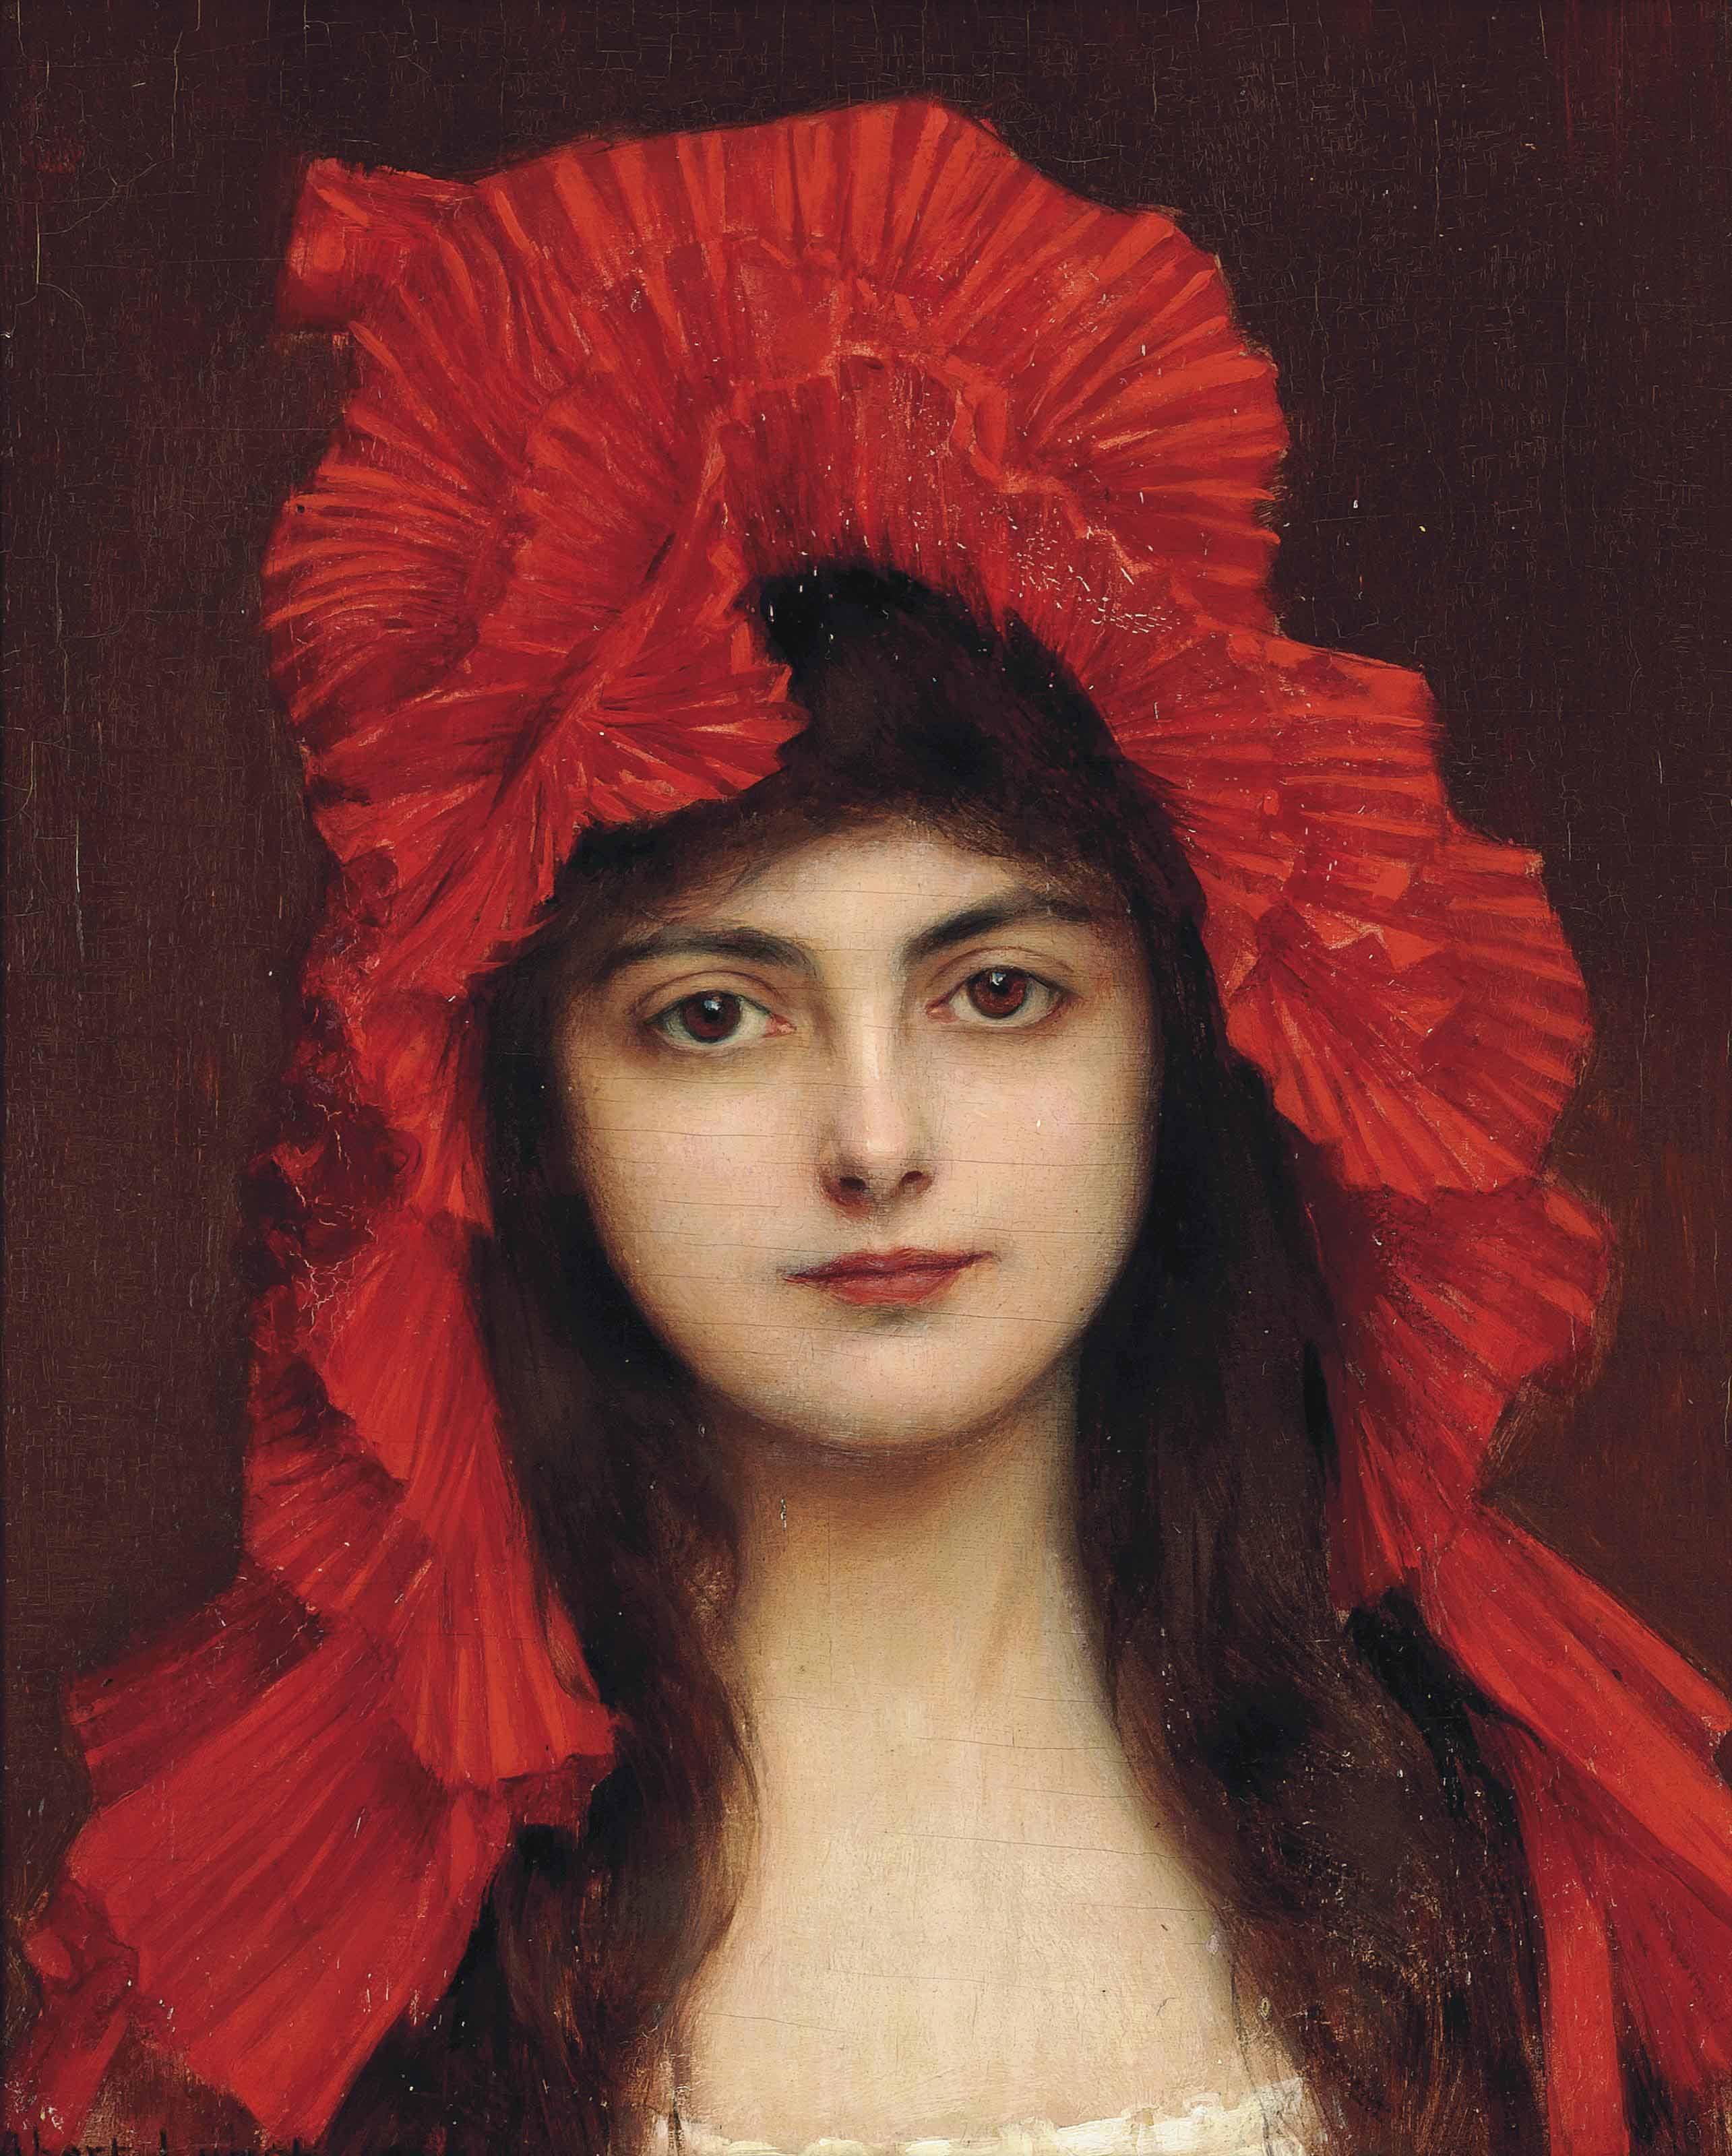 The red bonnet